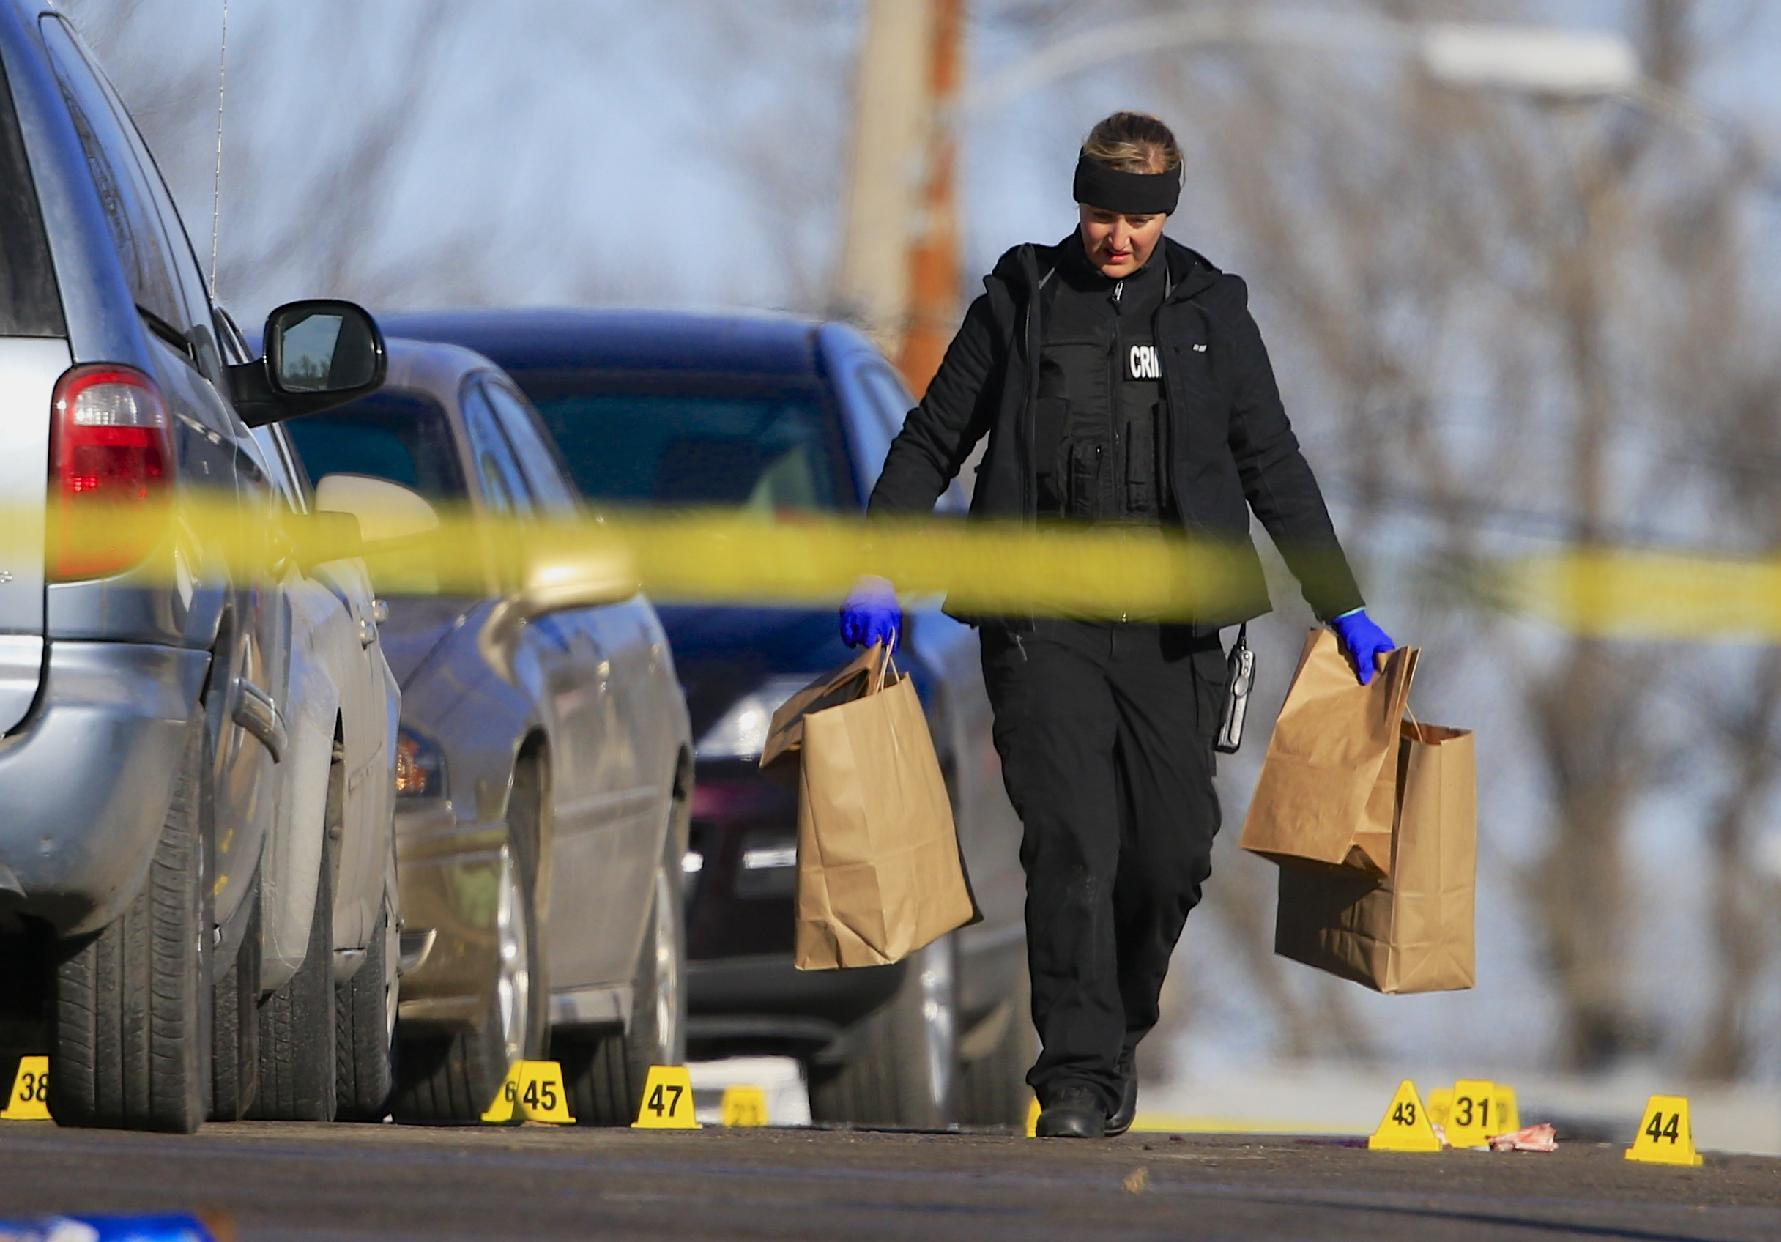 Police: Third person dies after shooting at Nebraska party